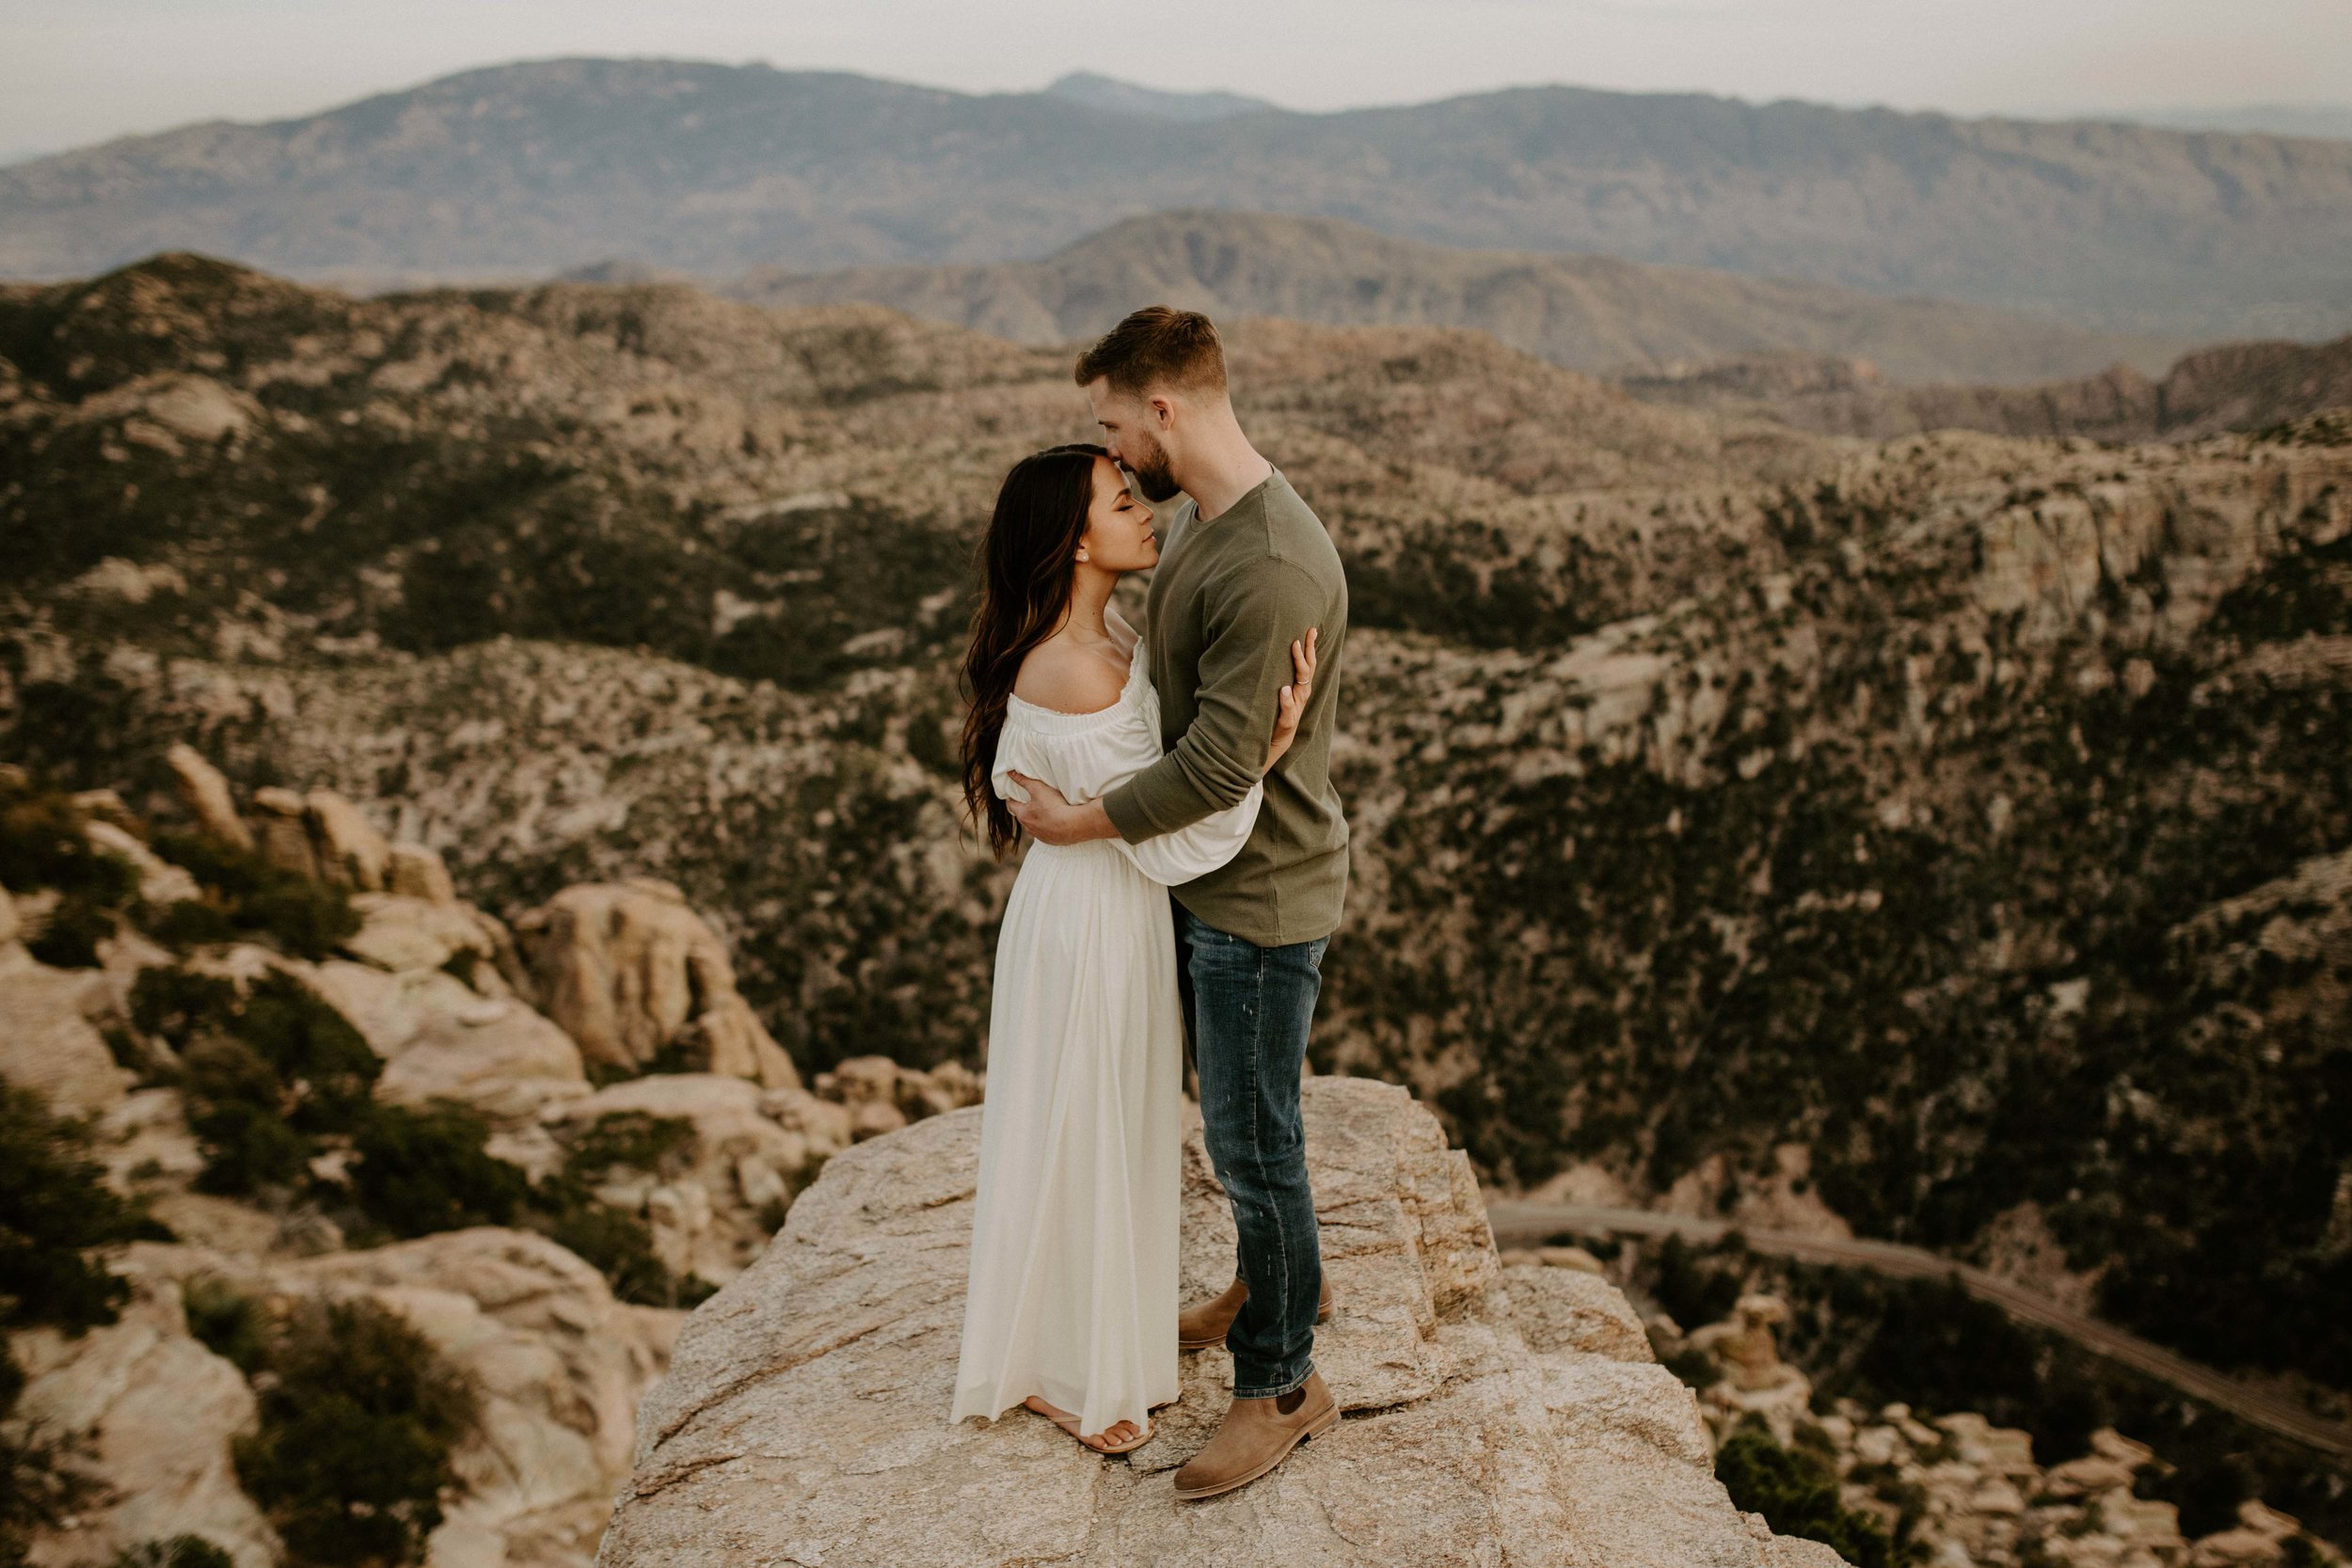 Engagement Session at Mount Lemmon in Tucson Arizona at Windy Vista Point